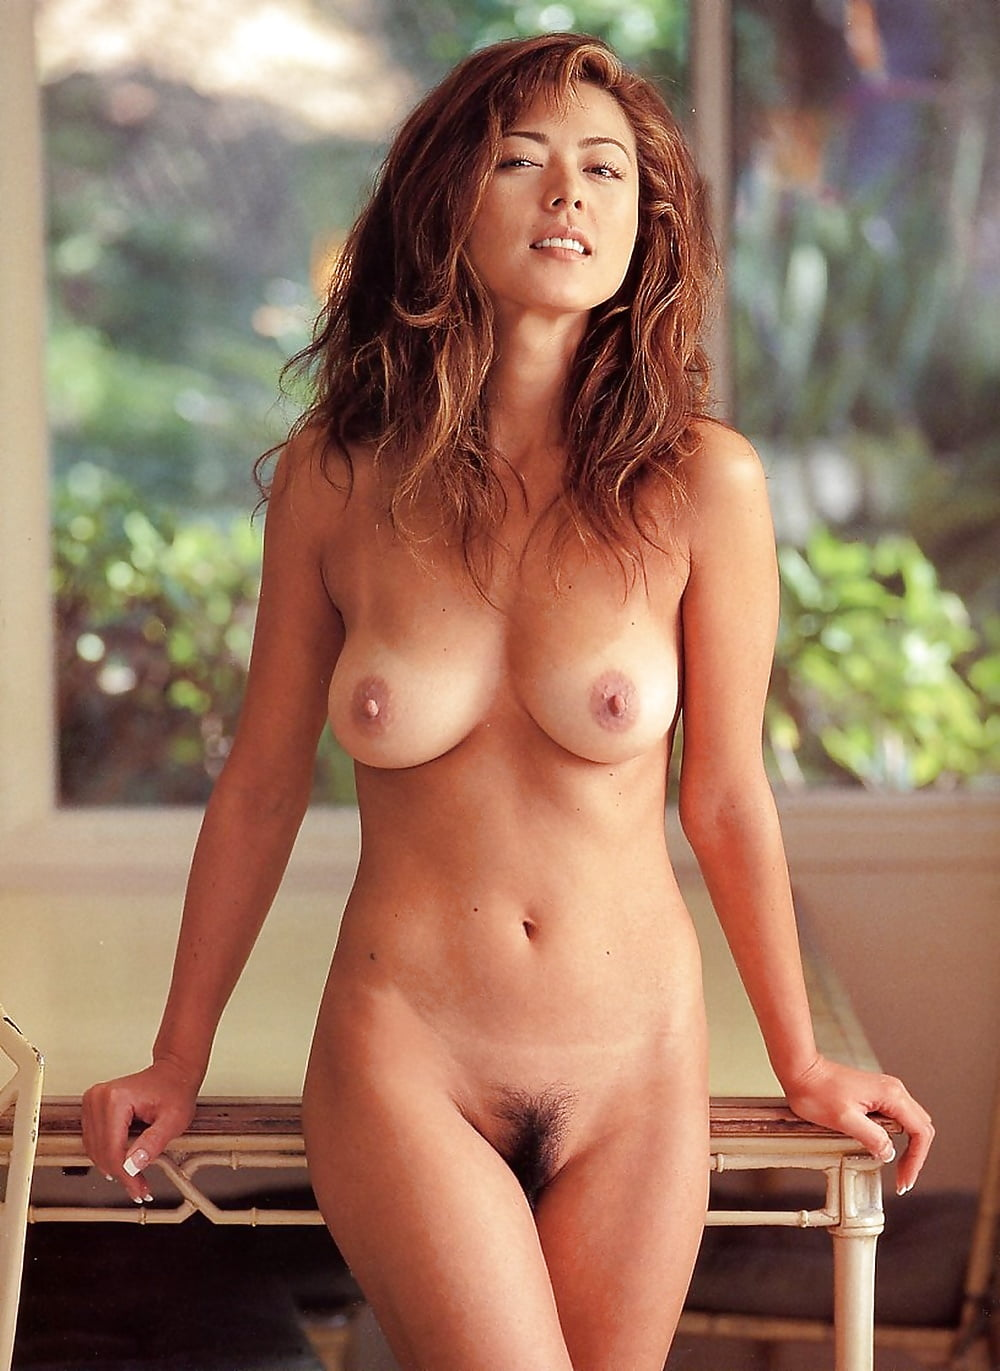 Nude pictures on flicker, desperate housewives nude pics and upskirt